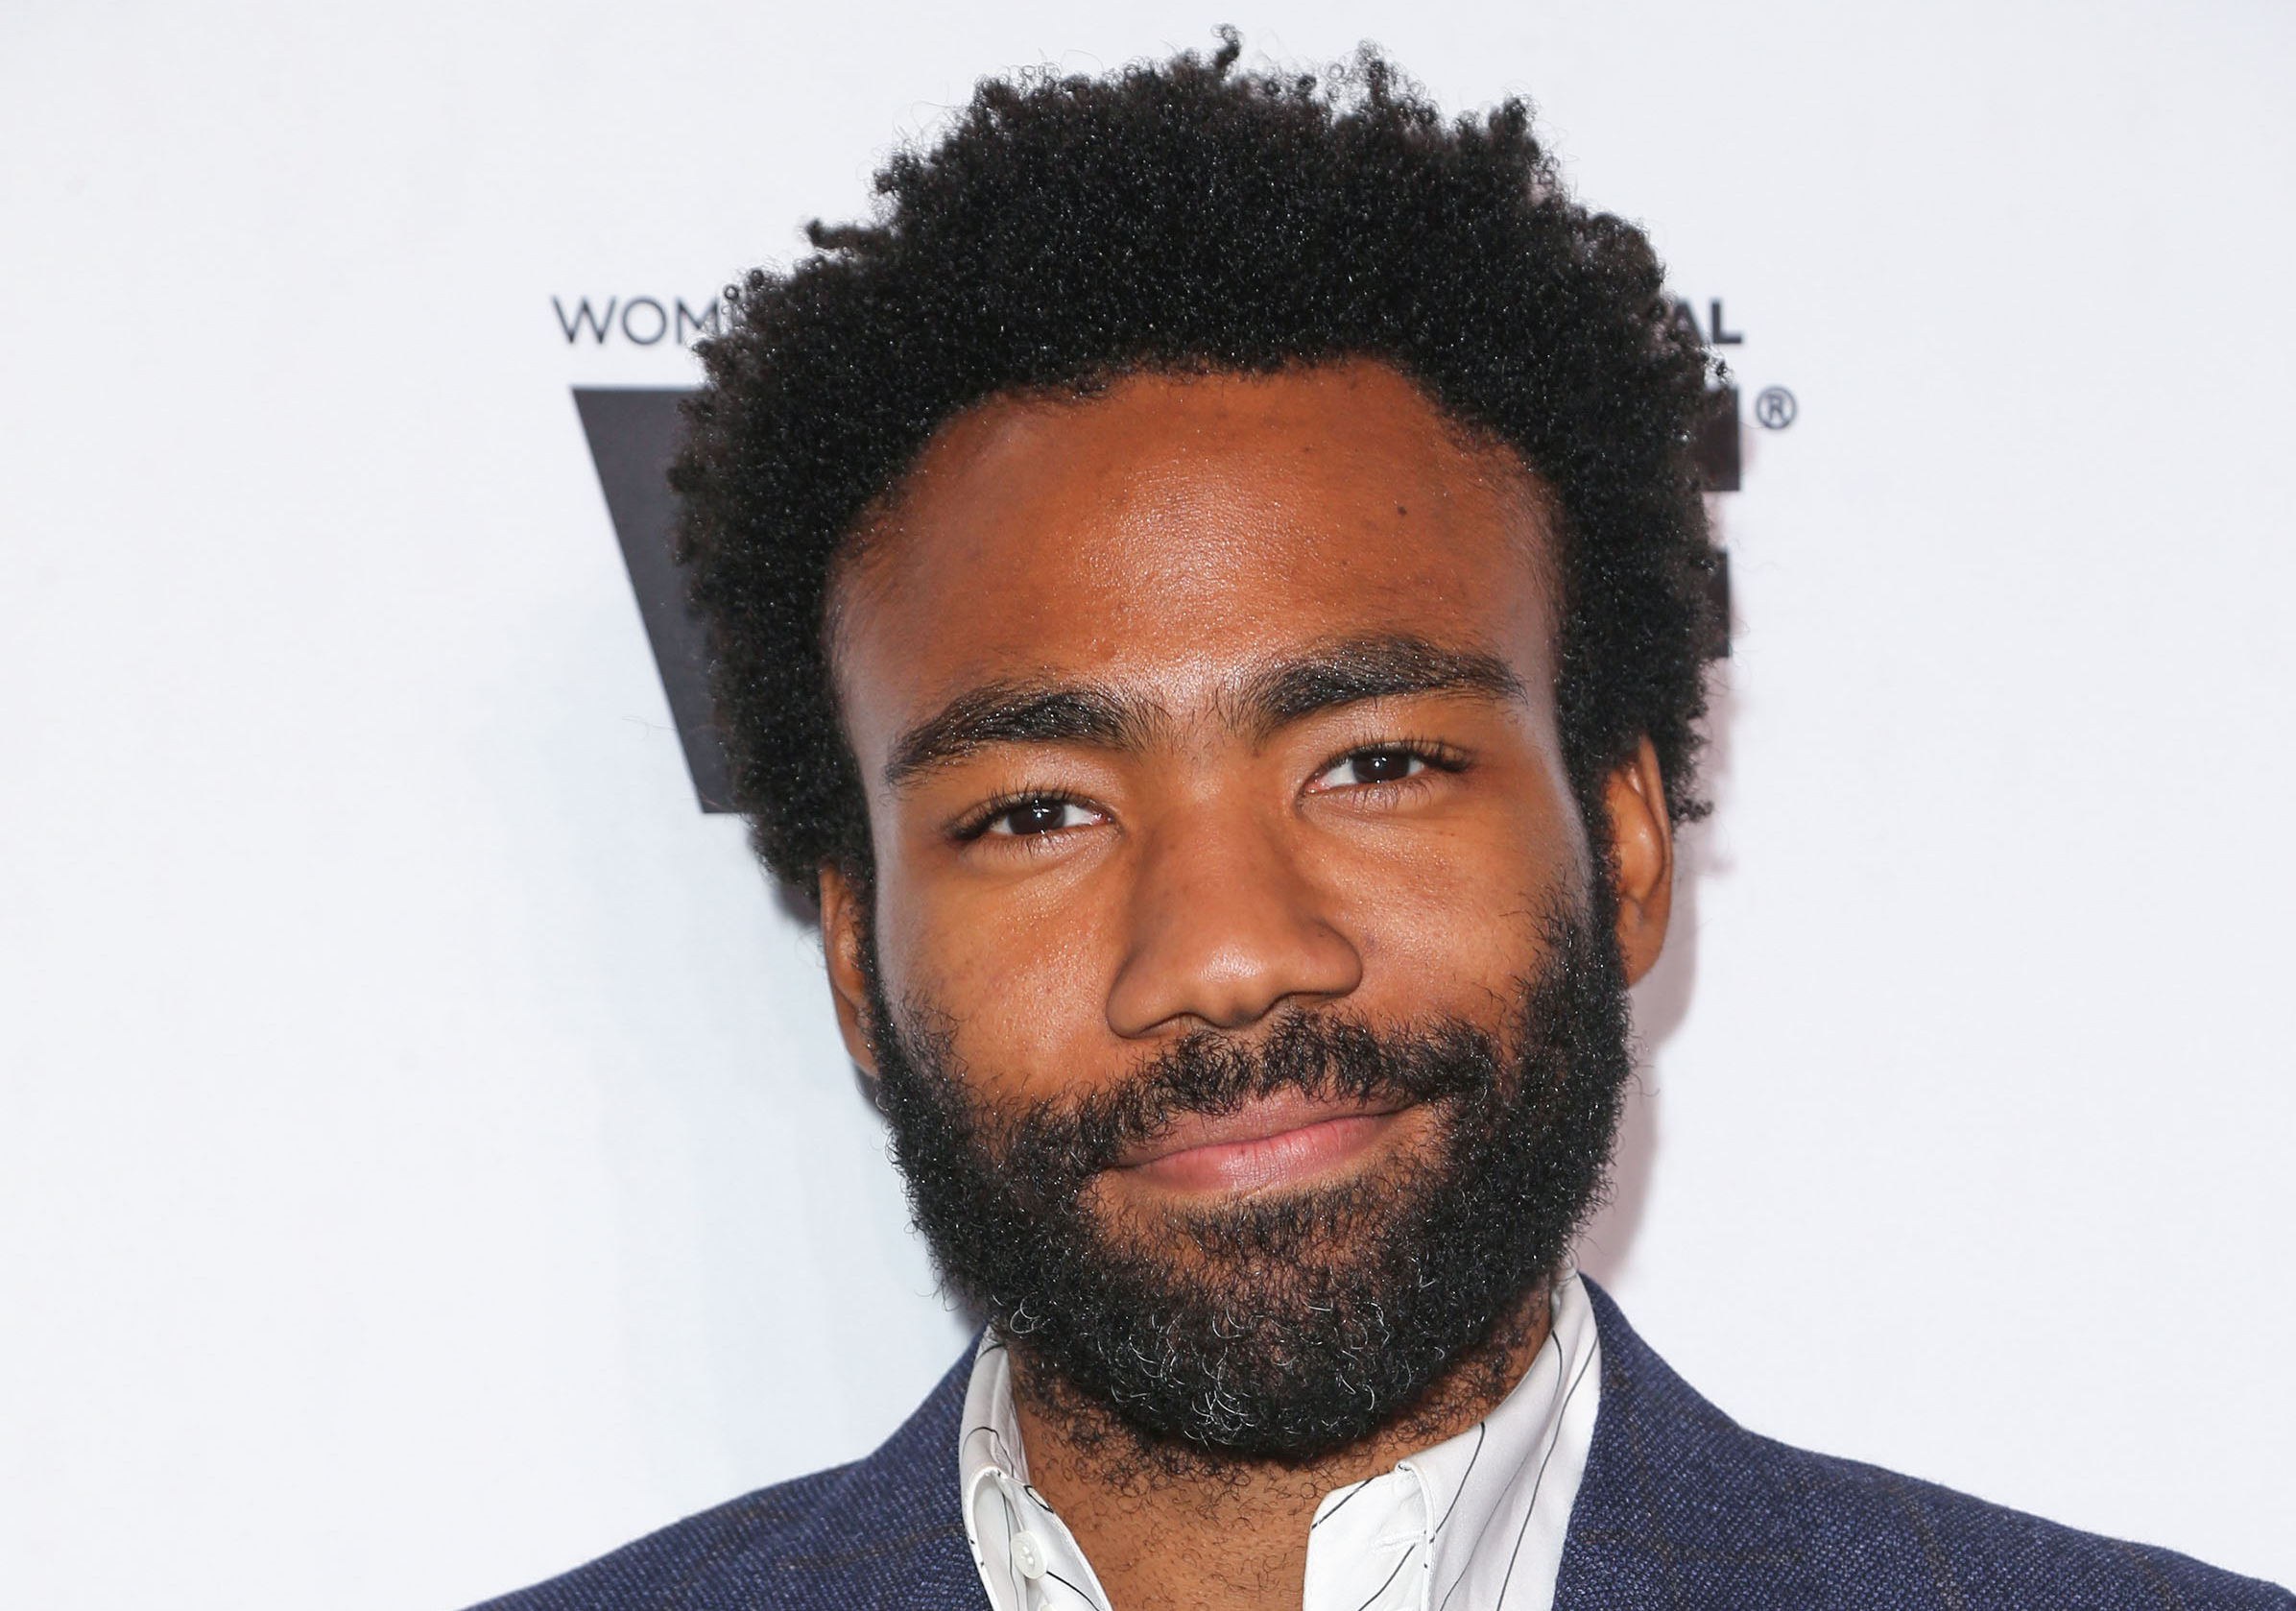 09/16/2016 - Donald Glover - Variety and Women in Film Host Pre-68th Annual Primetime Emmy Awards Celebration - Arrivals - Gracias Madre, 8905 Melrose Avenue - West Hollywood, CA, USA - Keywords: Vertical, WIF, Annual Event, Emmys, Social Event, Party, People, Person, Television Show, Photography, Portrait, Arts Culture and Entertainment, Arriving, Attending, Celebrity, Celebrities, 2016 Primetime Emmy Awards, 68th Primetime Emmy Awards, Media, Digital, Film Industry, Los Angeles, California Orientation: Portrait Face Count: 1 - False - Photo Credit: PRPhotos.com - Contact (1-866-551-7827) - Portrait Face Count: 1